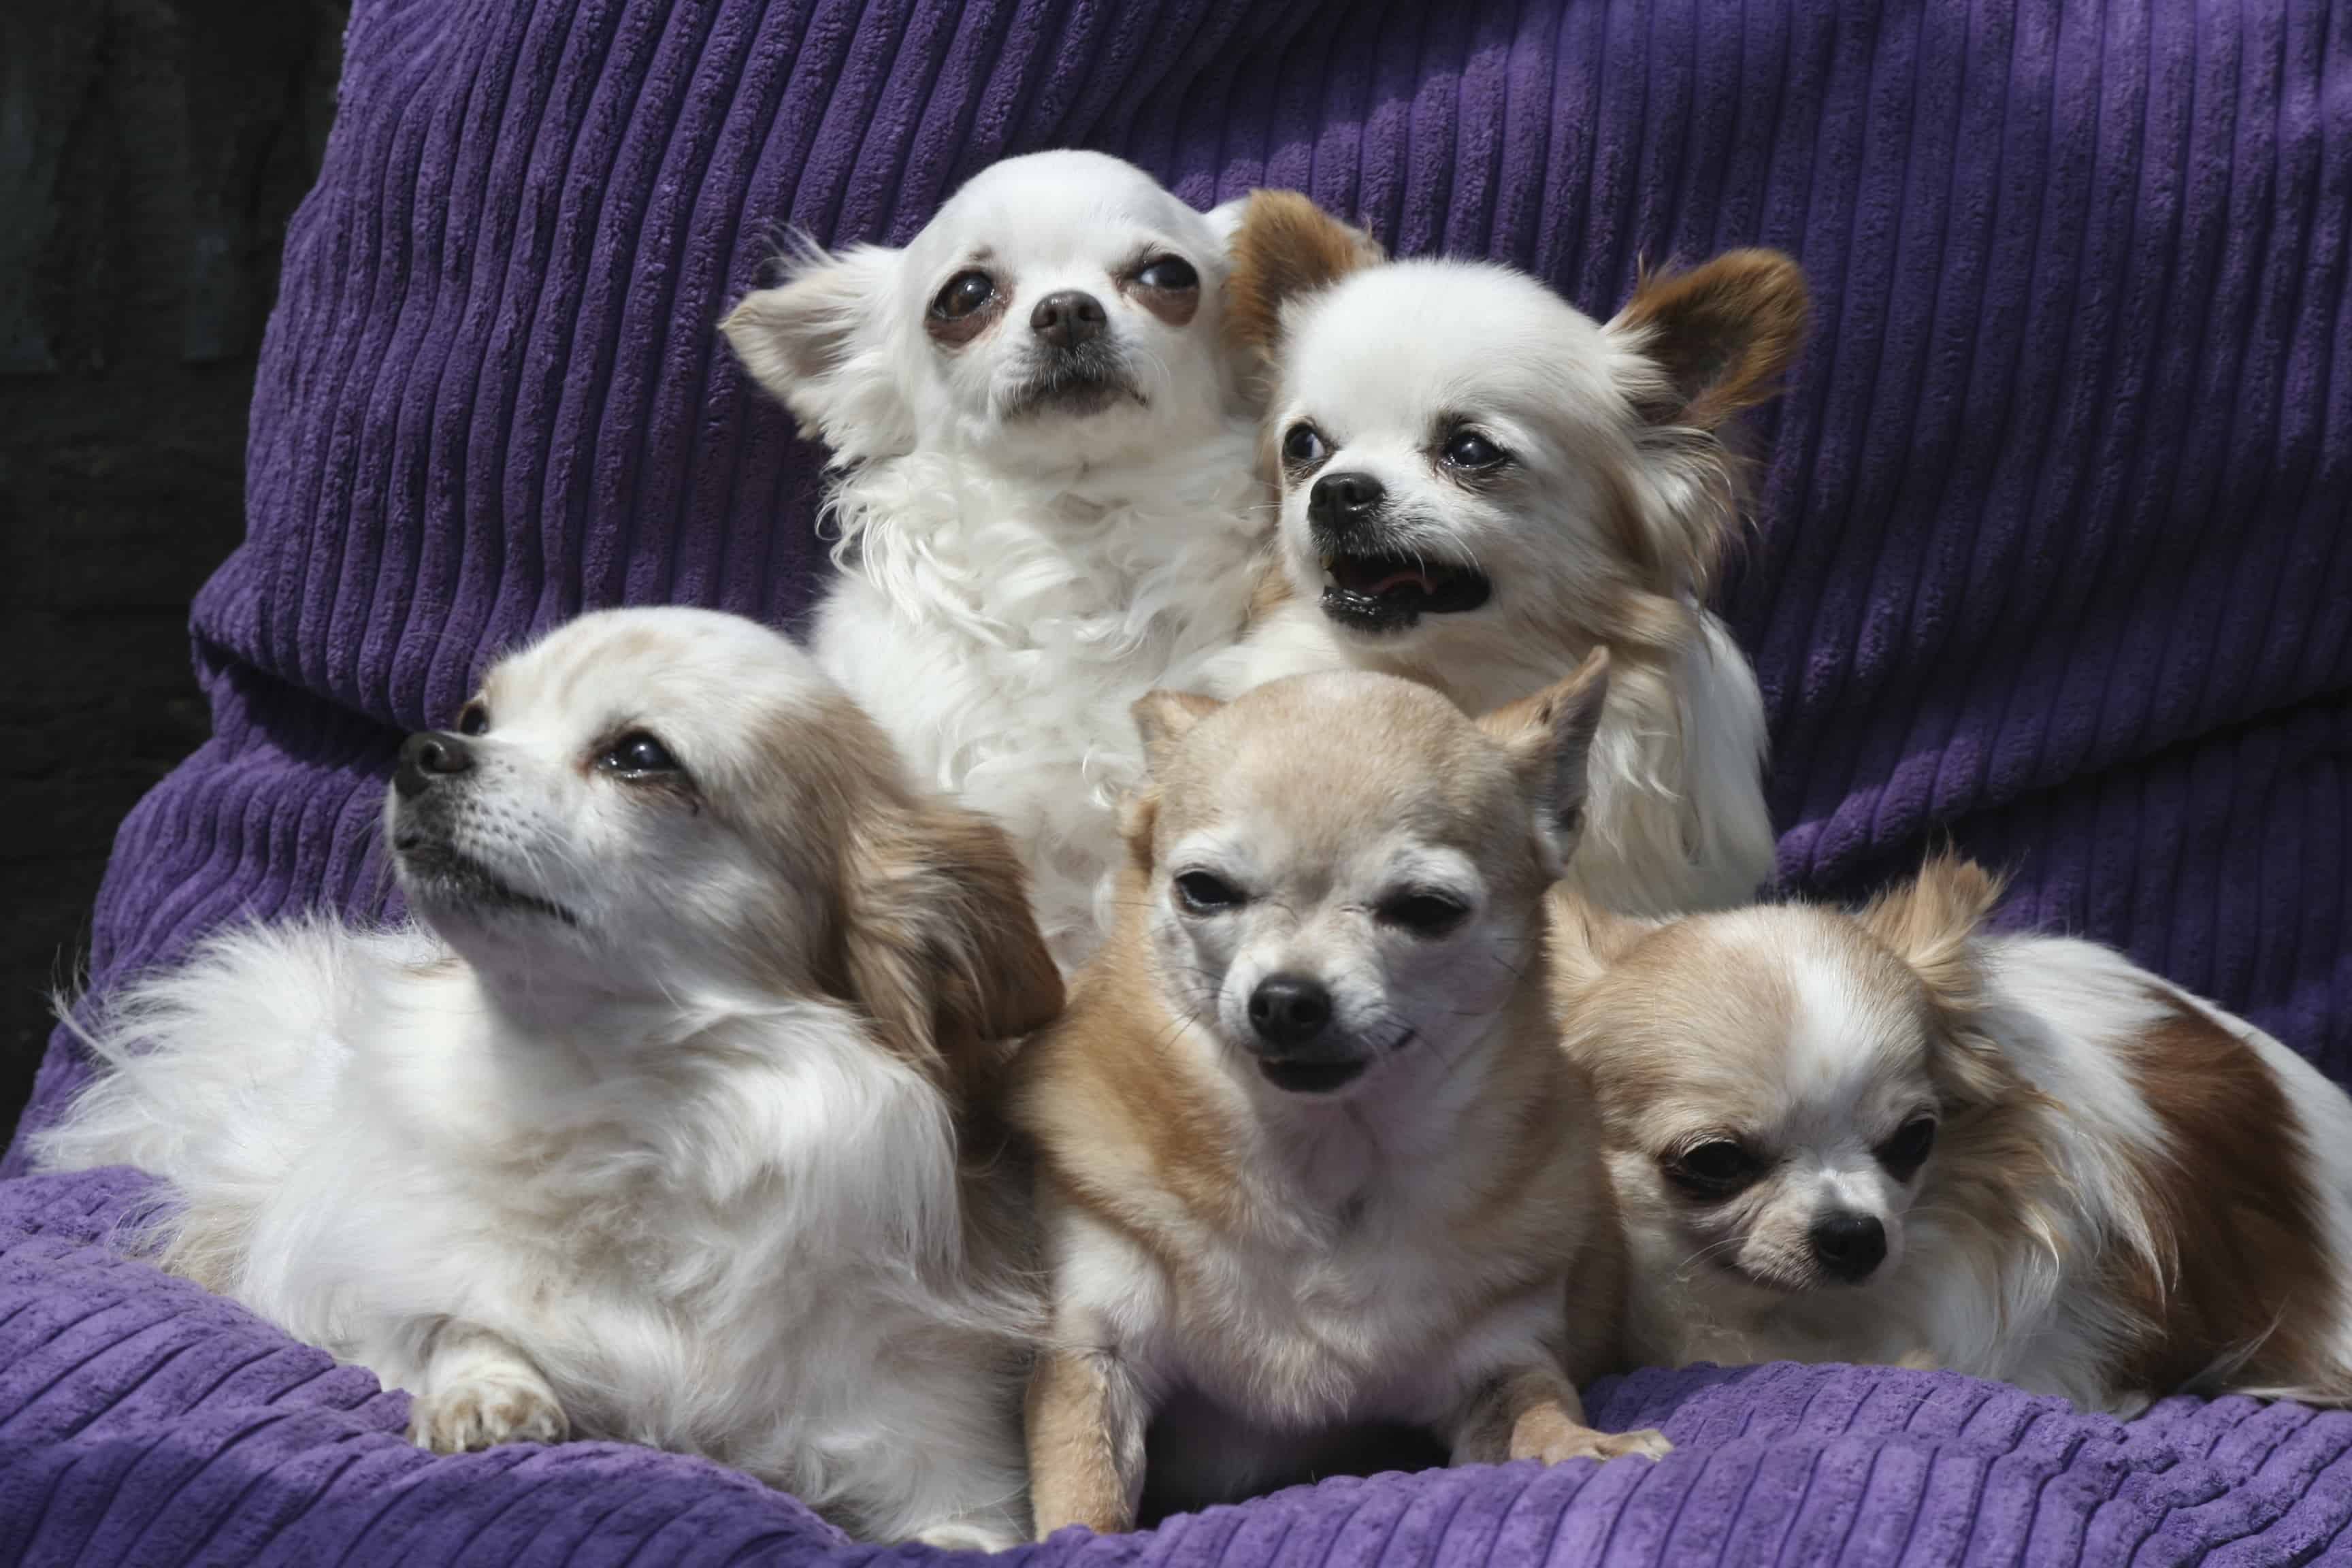 Chihuahuas come in coats of short and long hair